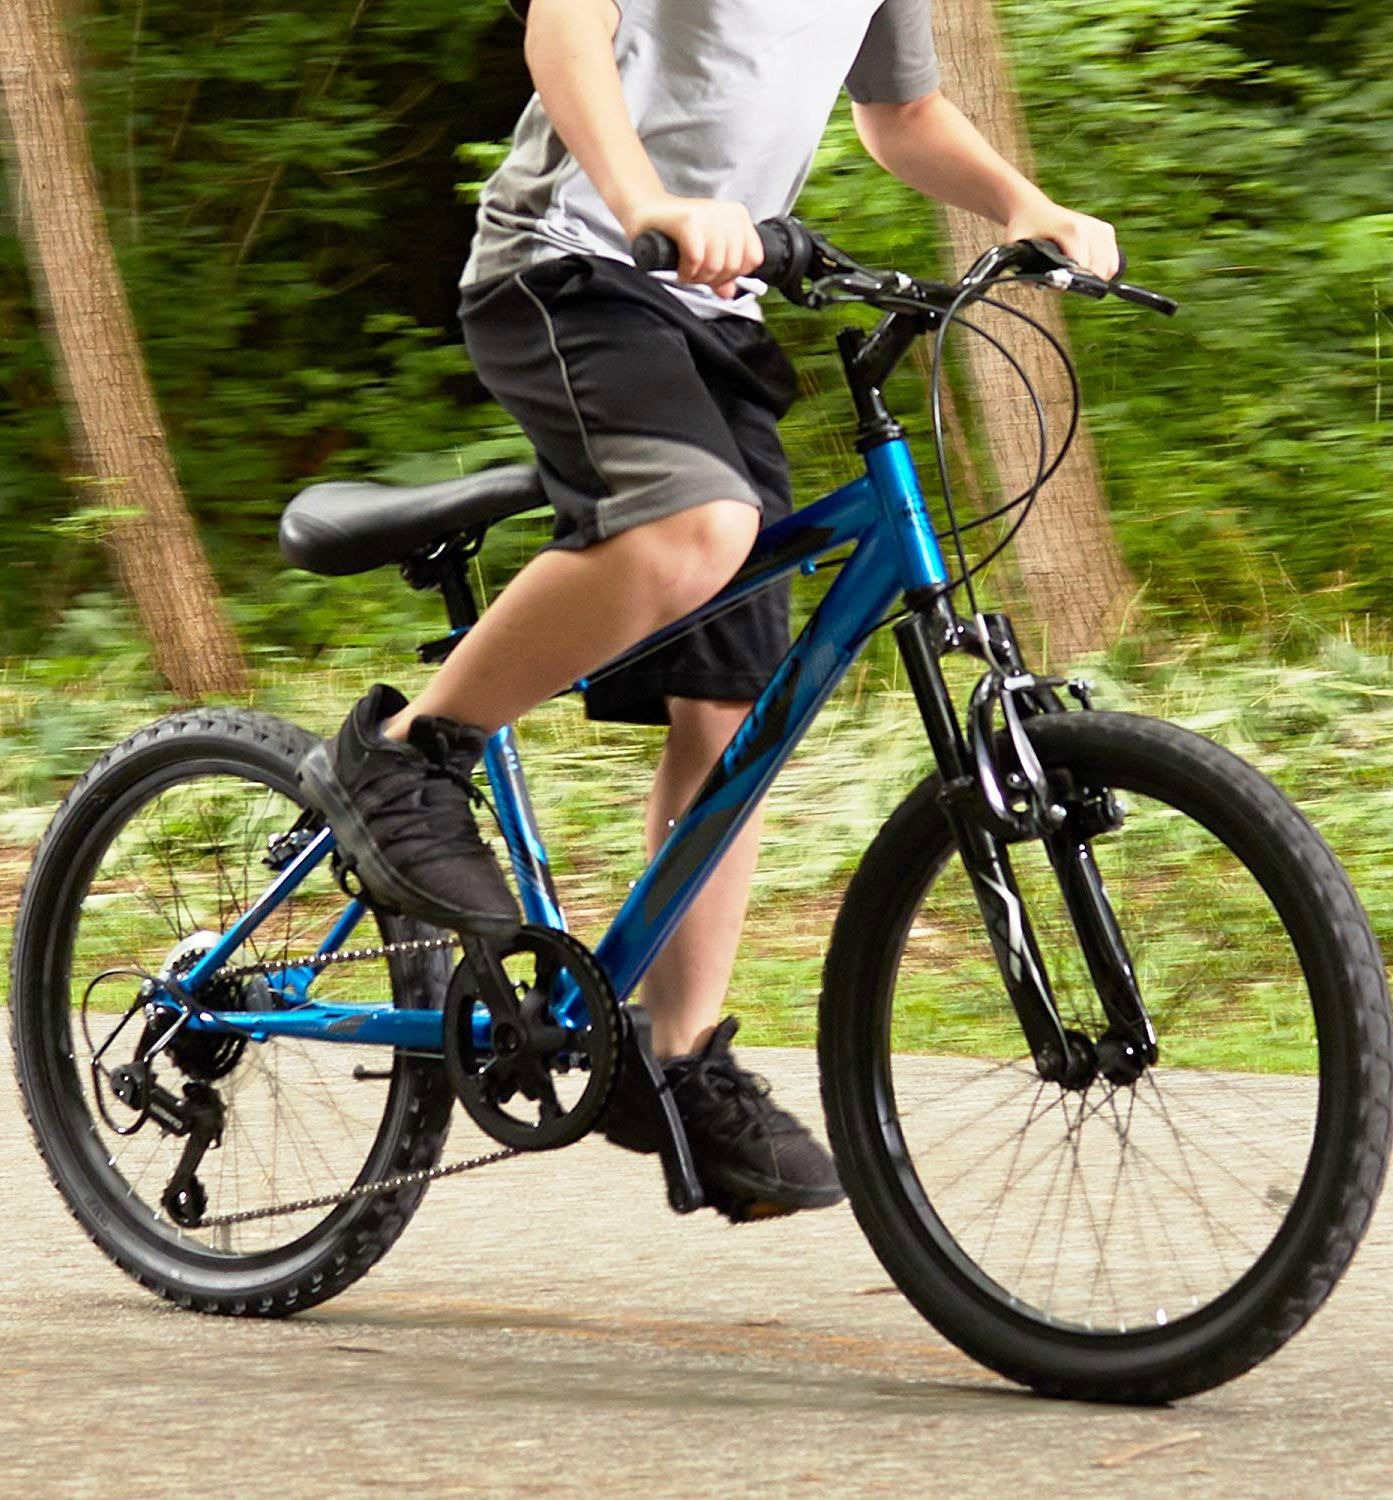 Best Mountain Bike Under 400 Dollars In 2019 Review S Guide